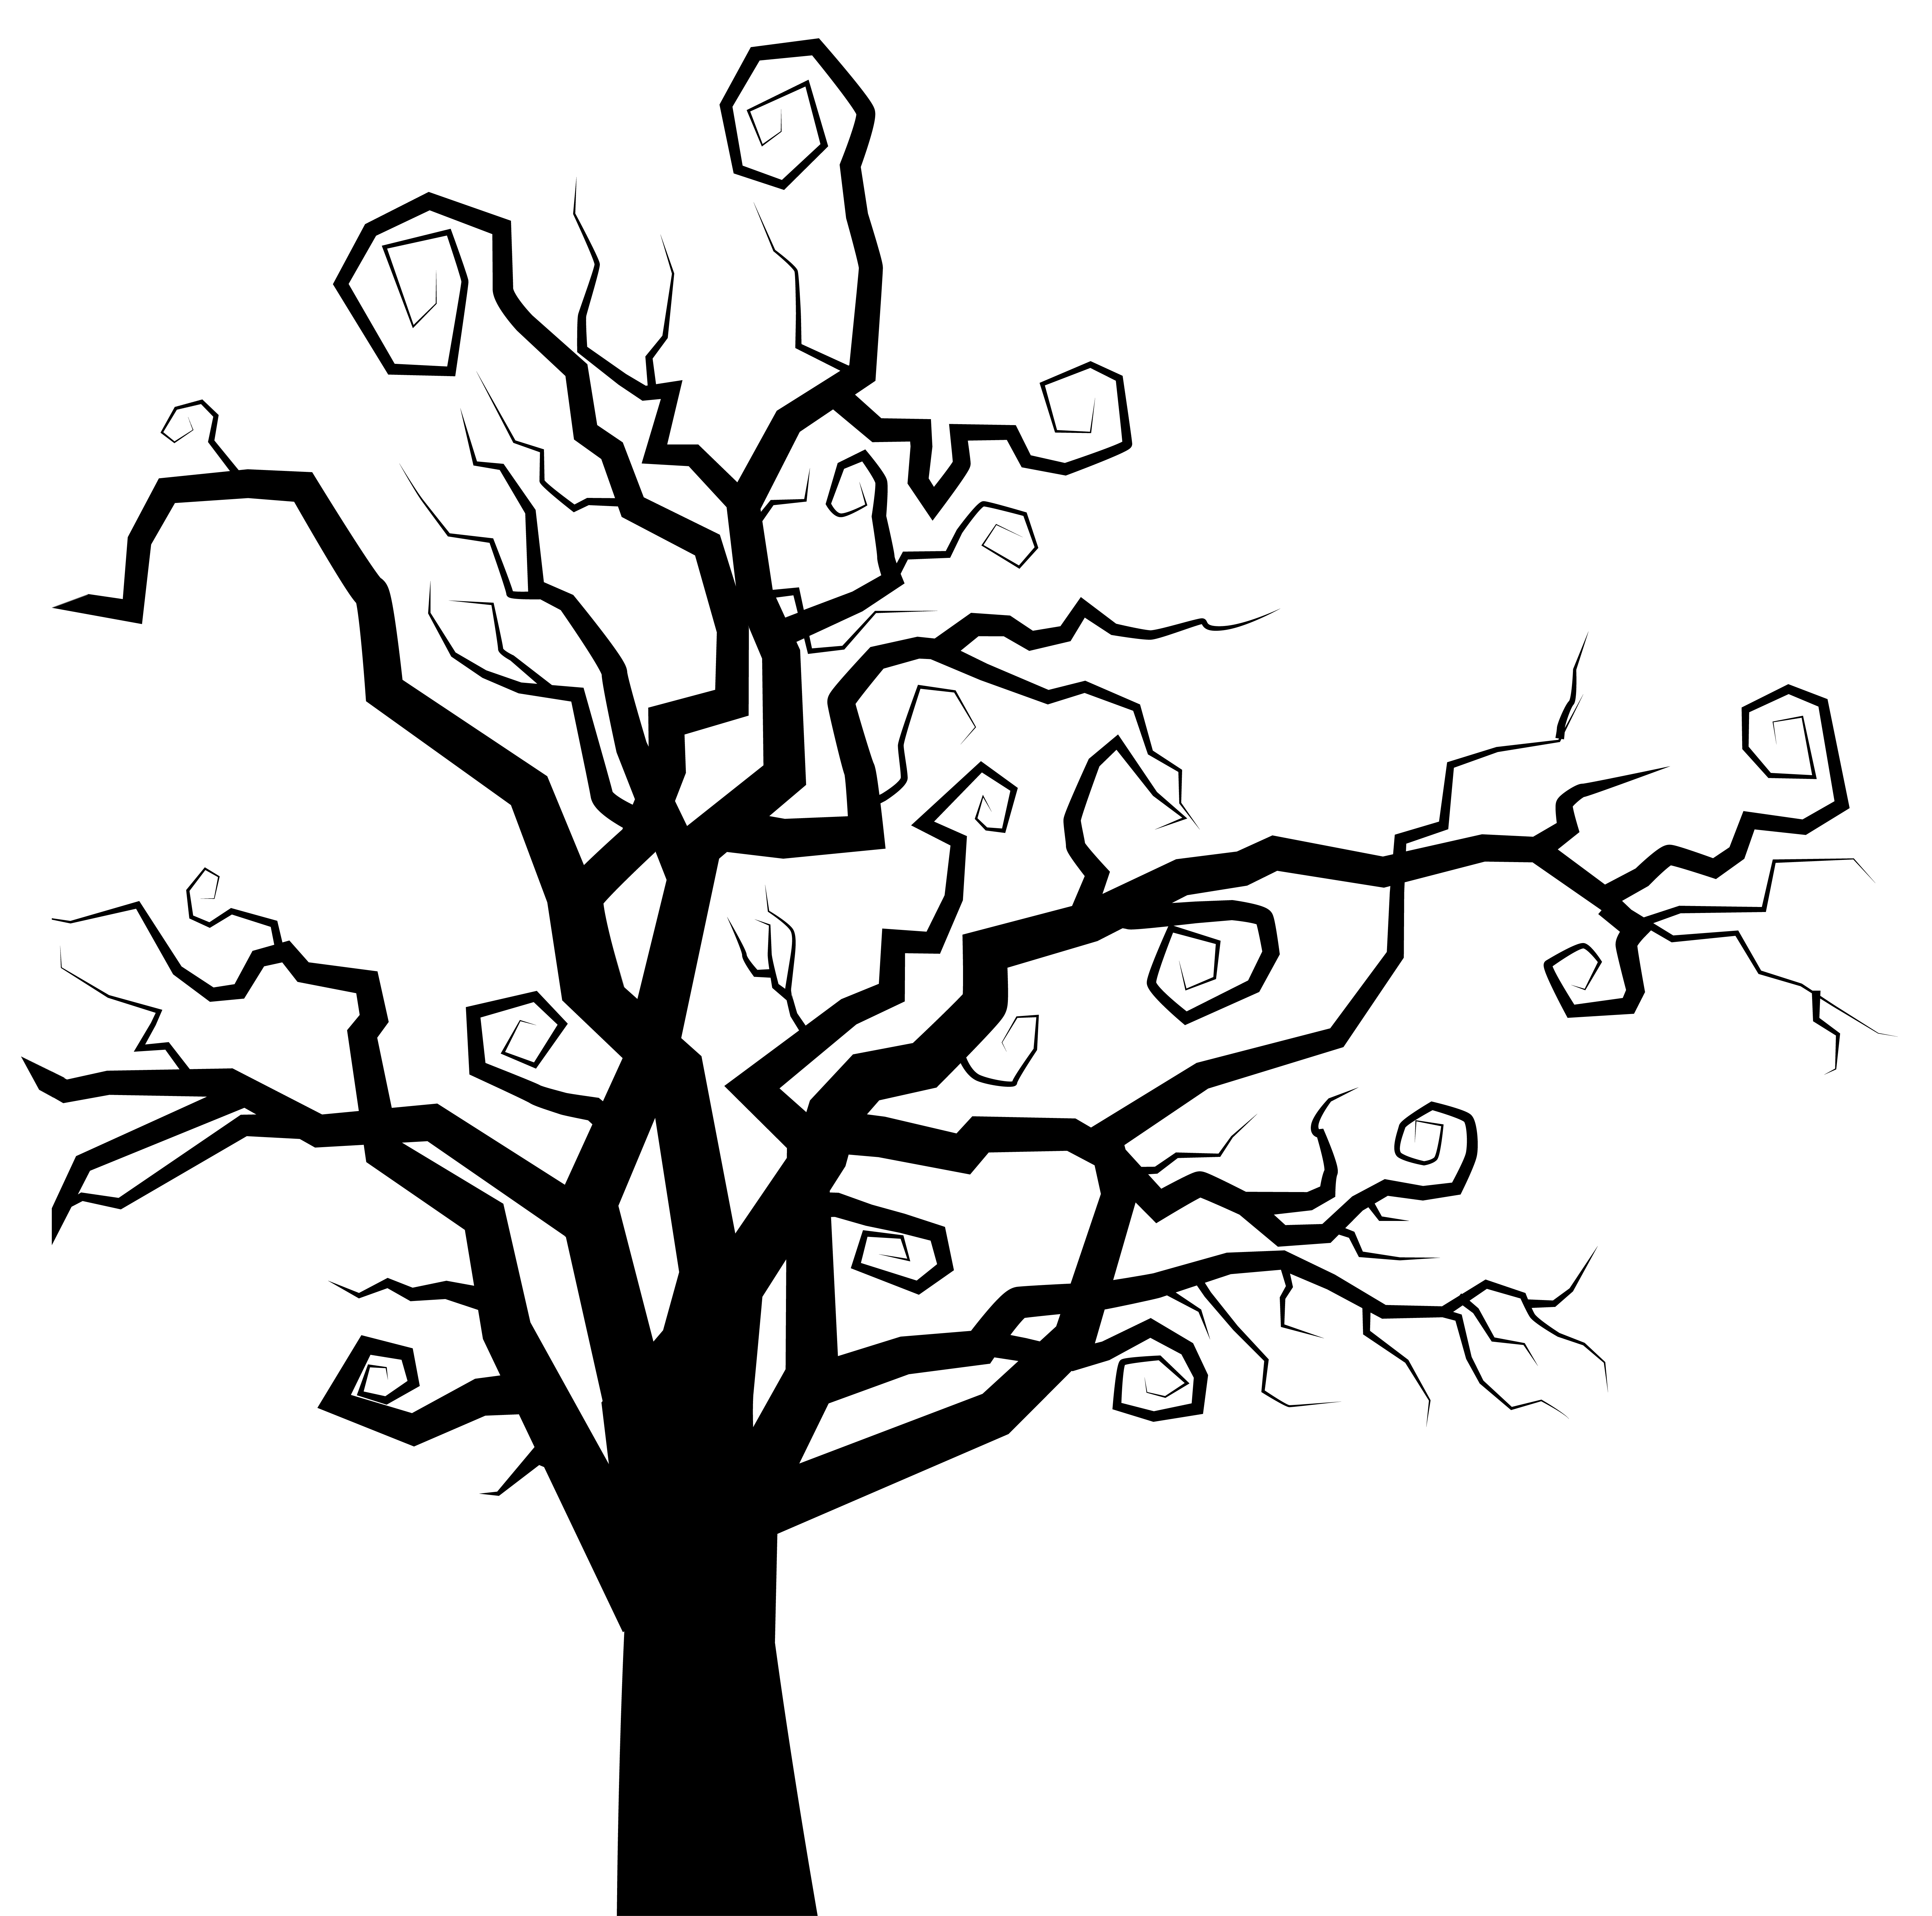 Tree roots clipart clip art black and white library Apple Tree Silhouette at GetDrawings.com | Free for personal use ... clip art black and white library